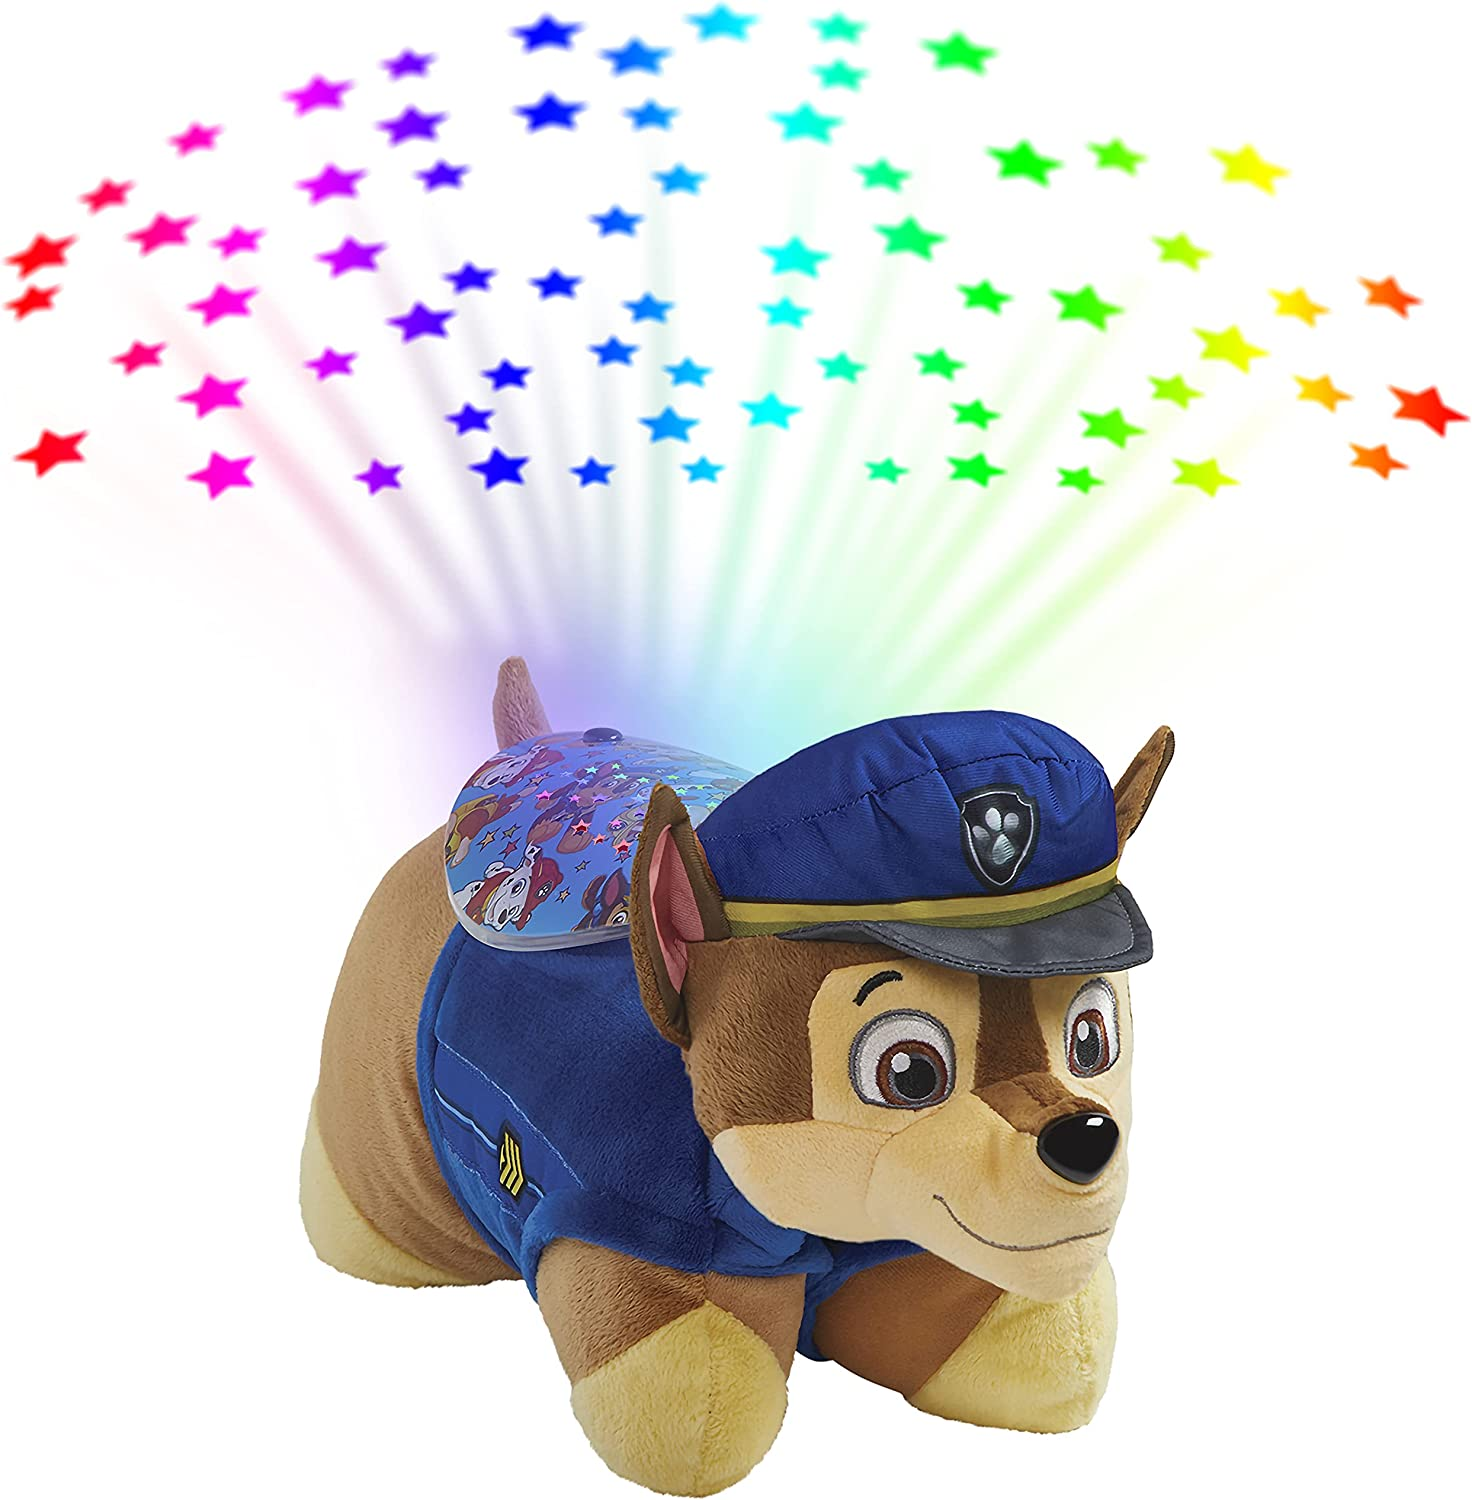 Pillow Pets Nickelodeon Max 51% OFF Paw Patrol Chase Mail order cheap – Lites Sleeptime